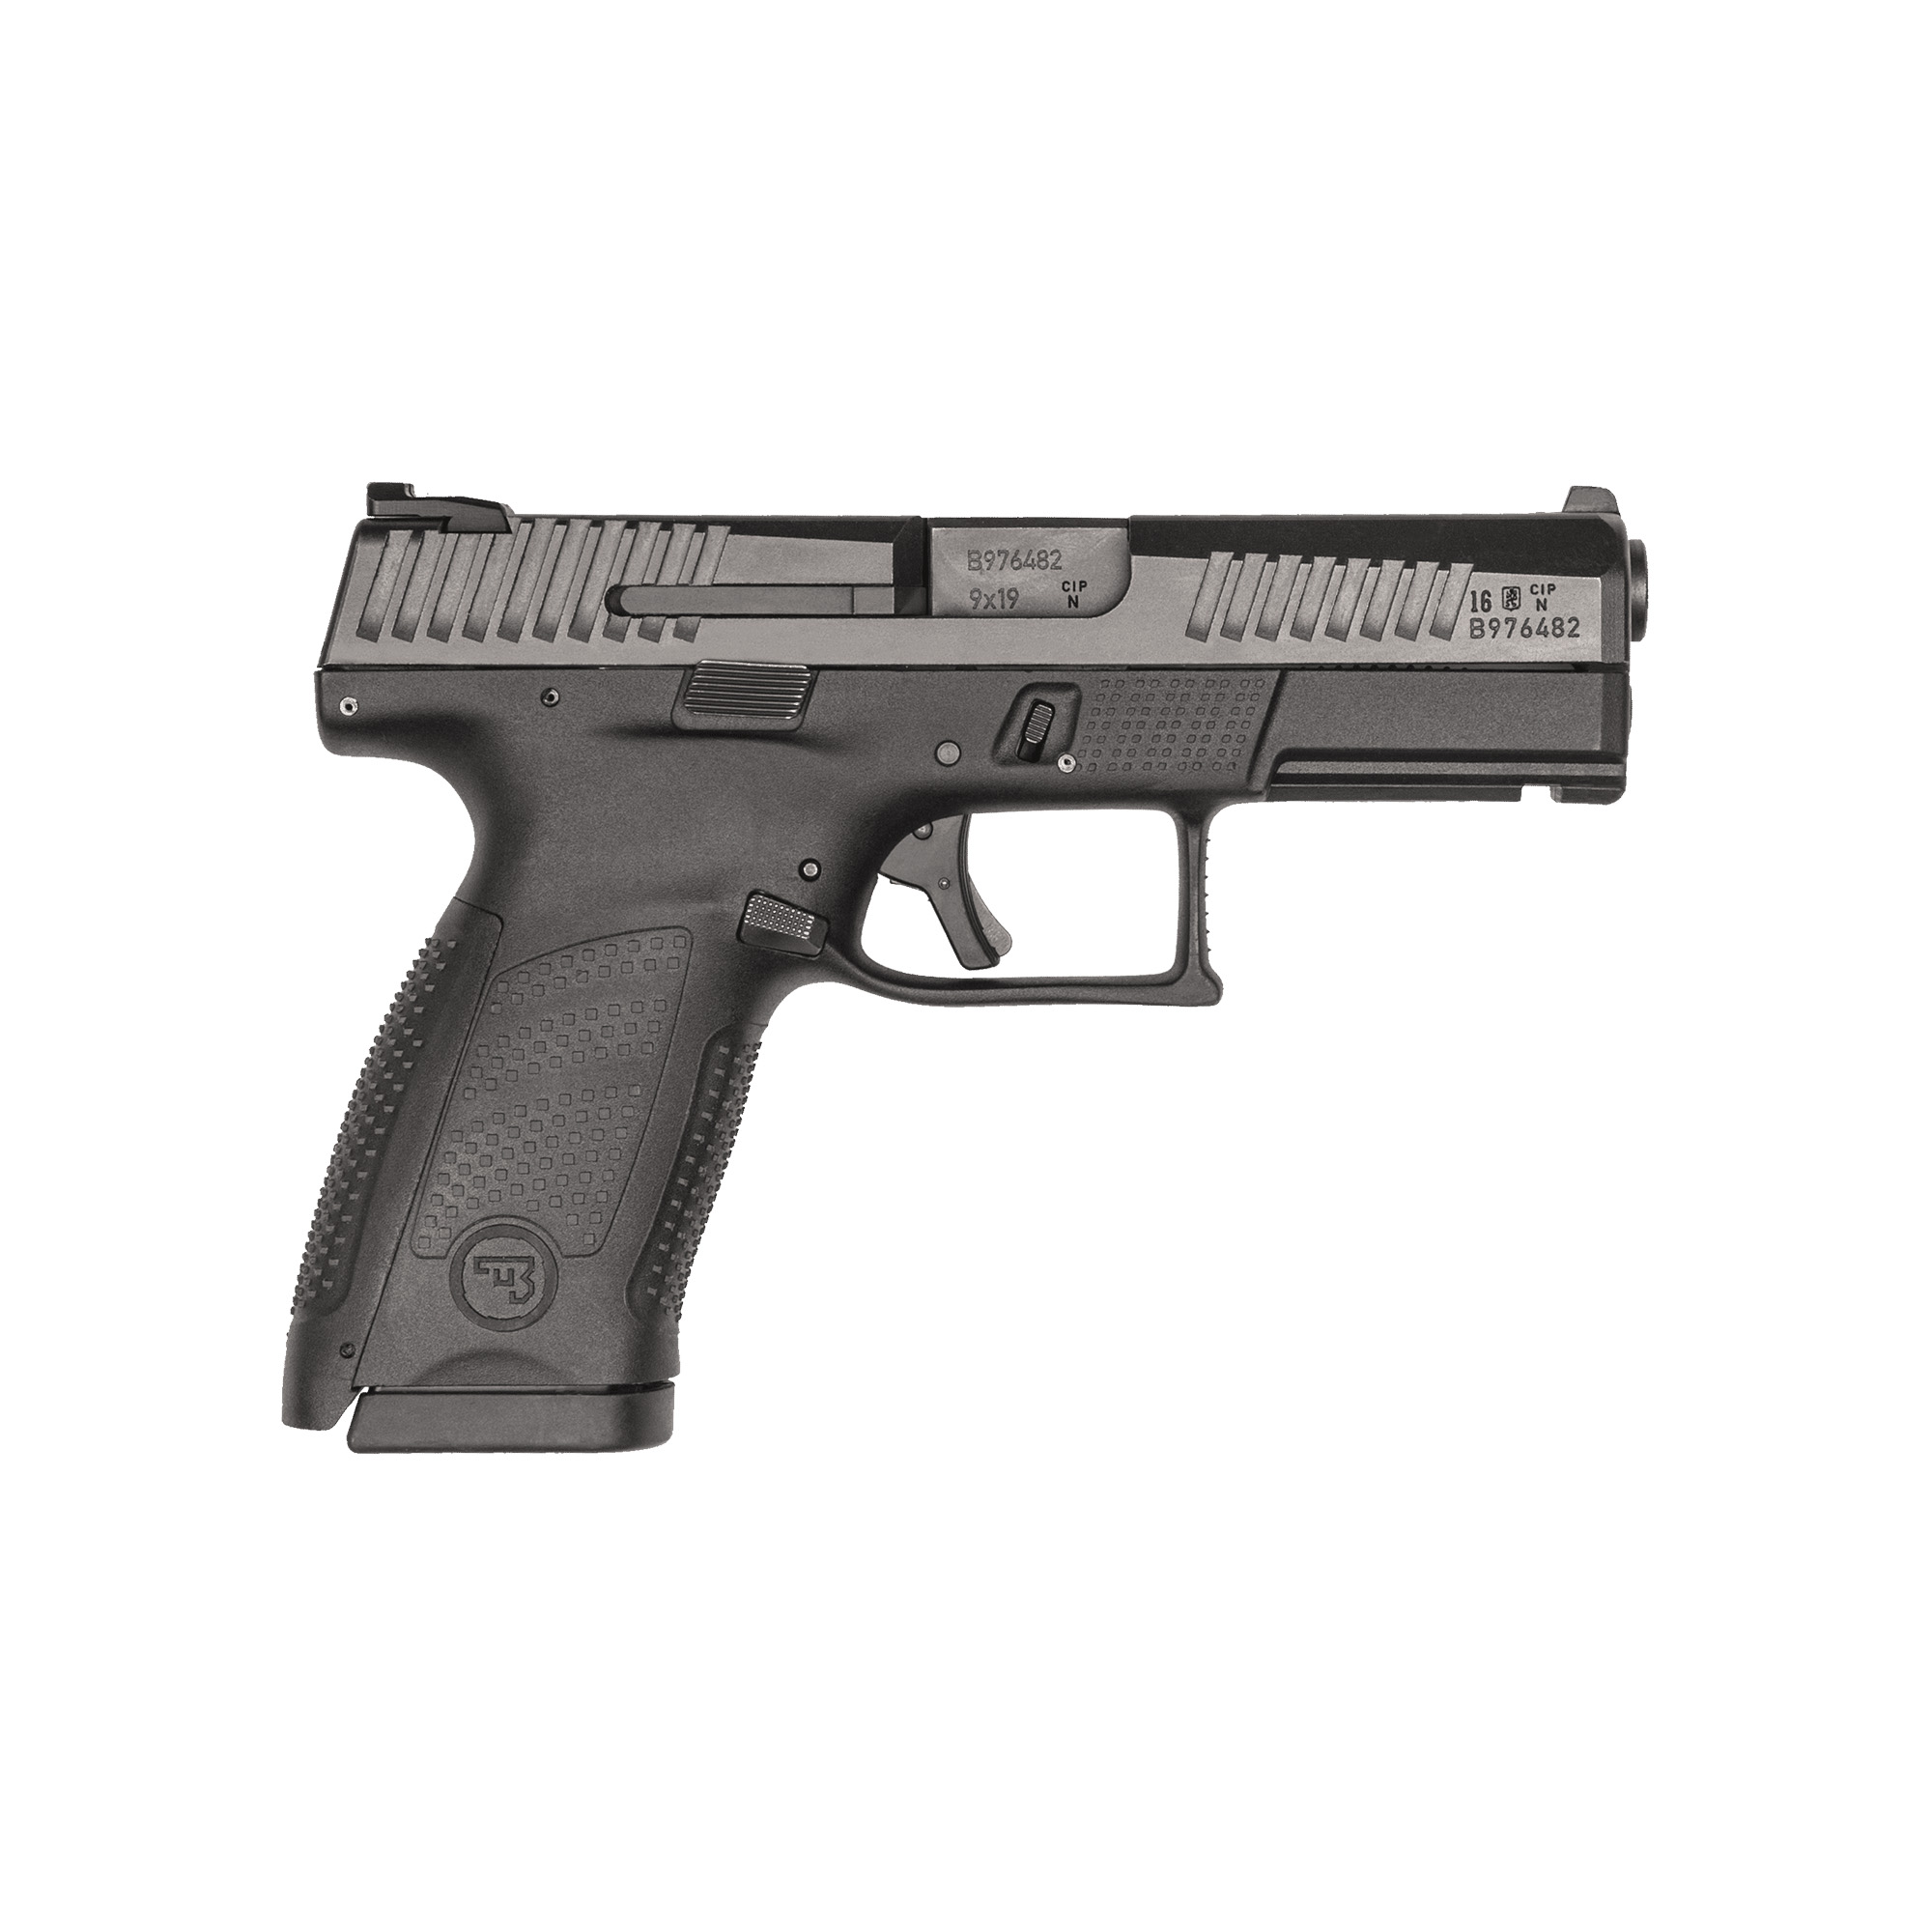 """The P-10C is much more than just CZ's take on the striker-fired pistol"""" the P-10 is decidedly CZ"""" from the way it feels to the way it shoots. Built to withstand the rigors of military use"""" its fiber-reinforced polymer frame and hardy nitride finish are made for the daily grind. A generous trigger guard allows use with gloved hands while being undercut to allow as high a grip as possible."""